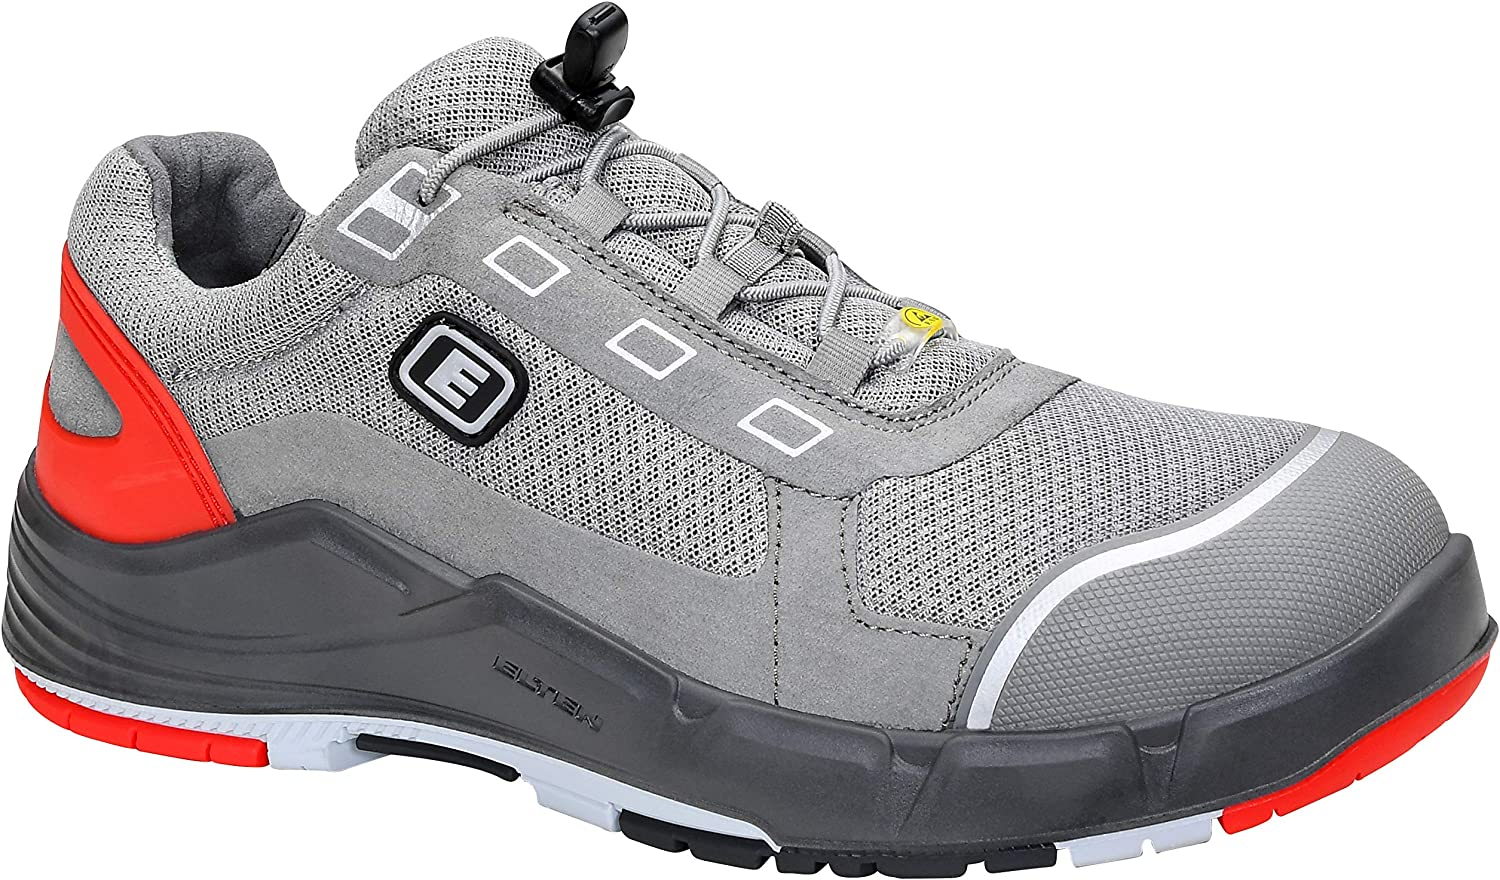 Elten 72412-49 Miguel Low ESD S1 Sporty Safety shoes, Mirco Fibre, Textile Lining, Steel Toe, Heel Stabiliser, Size 3-12